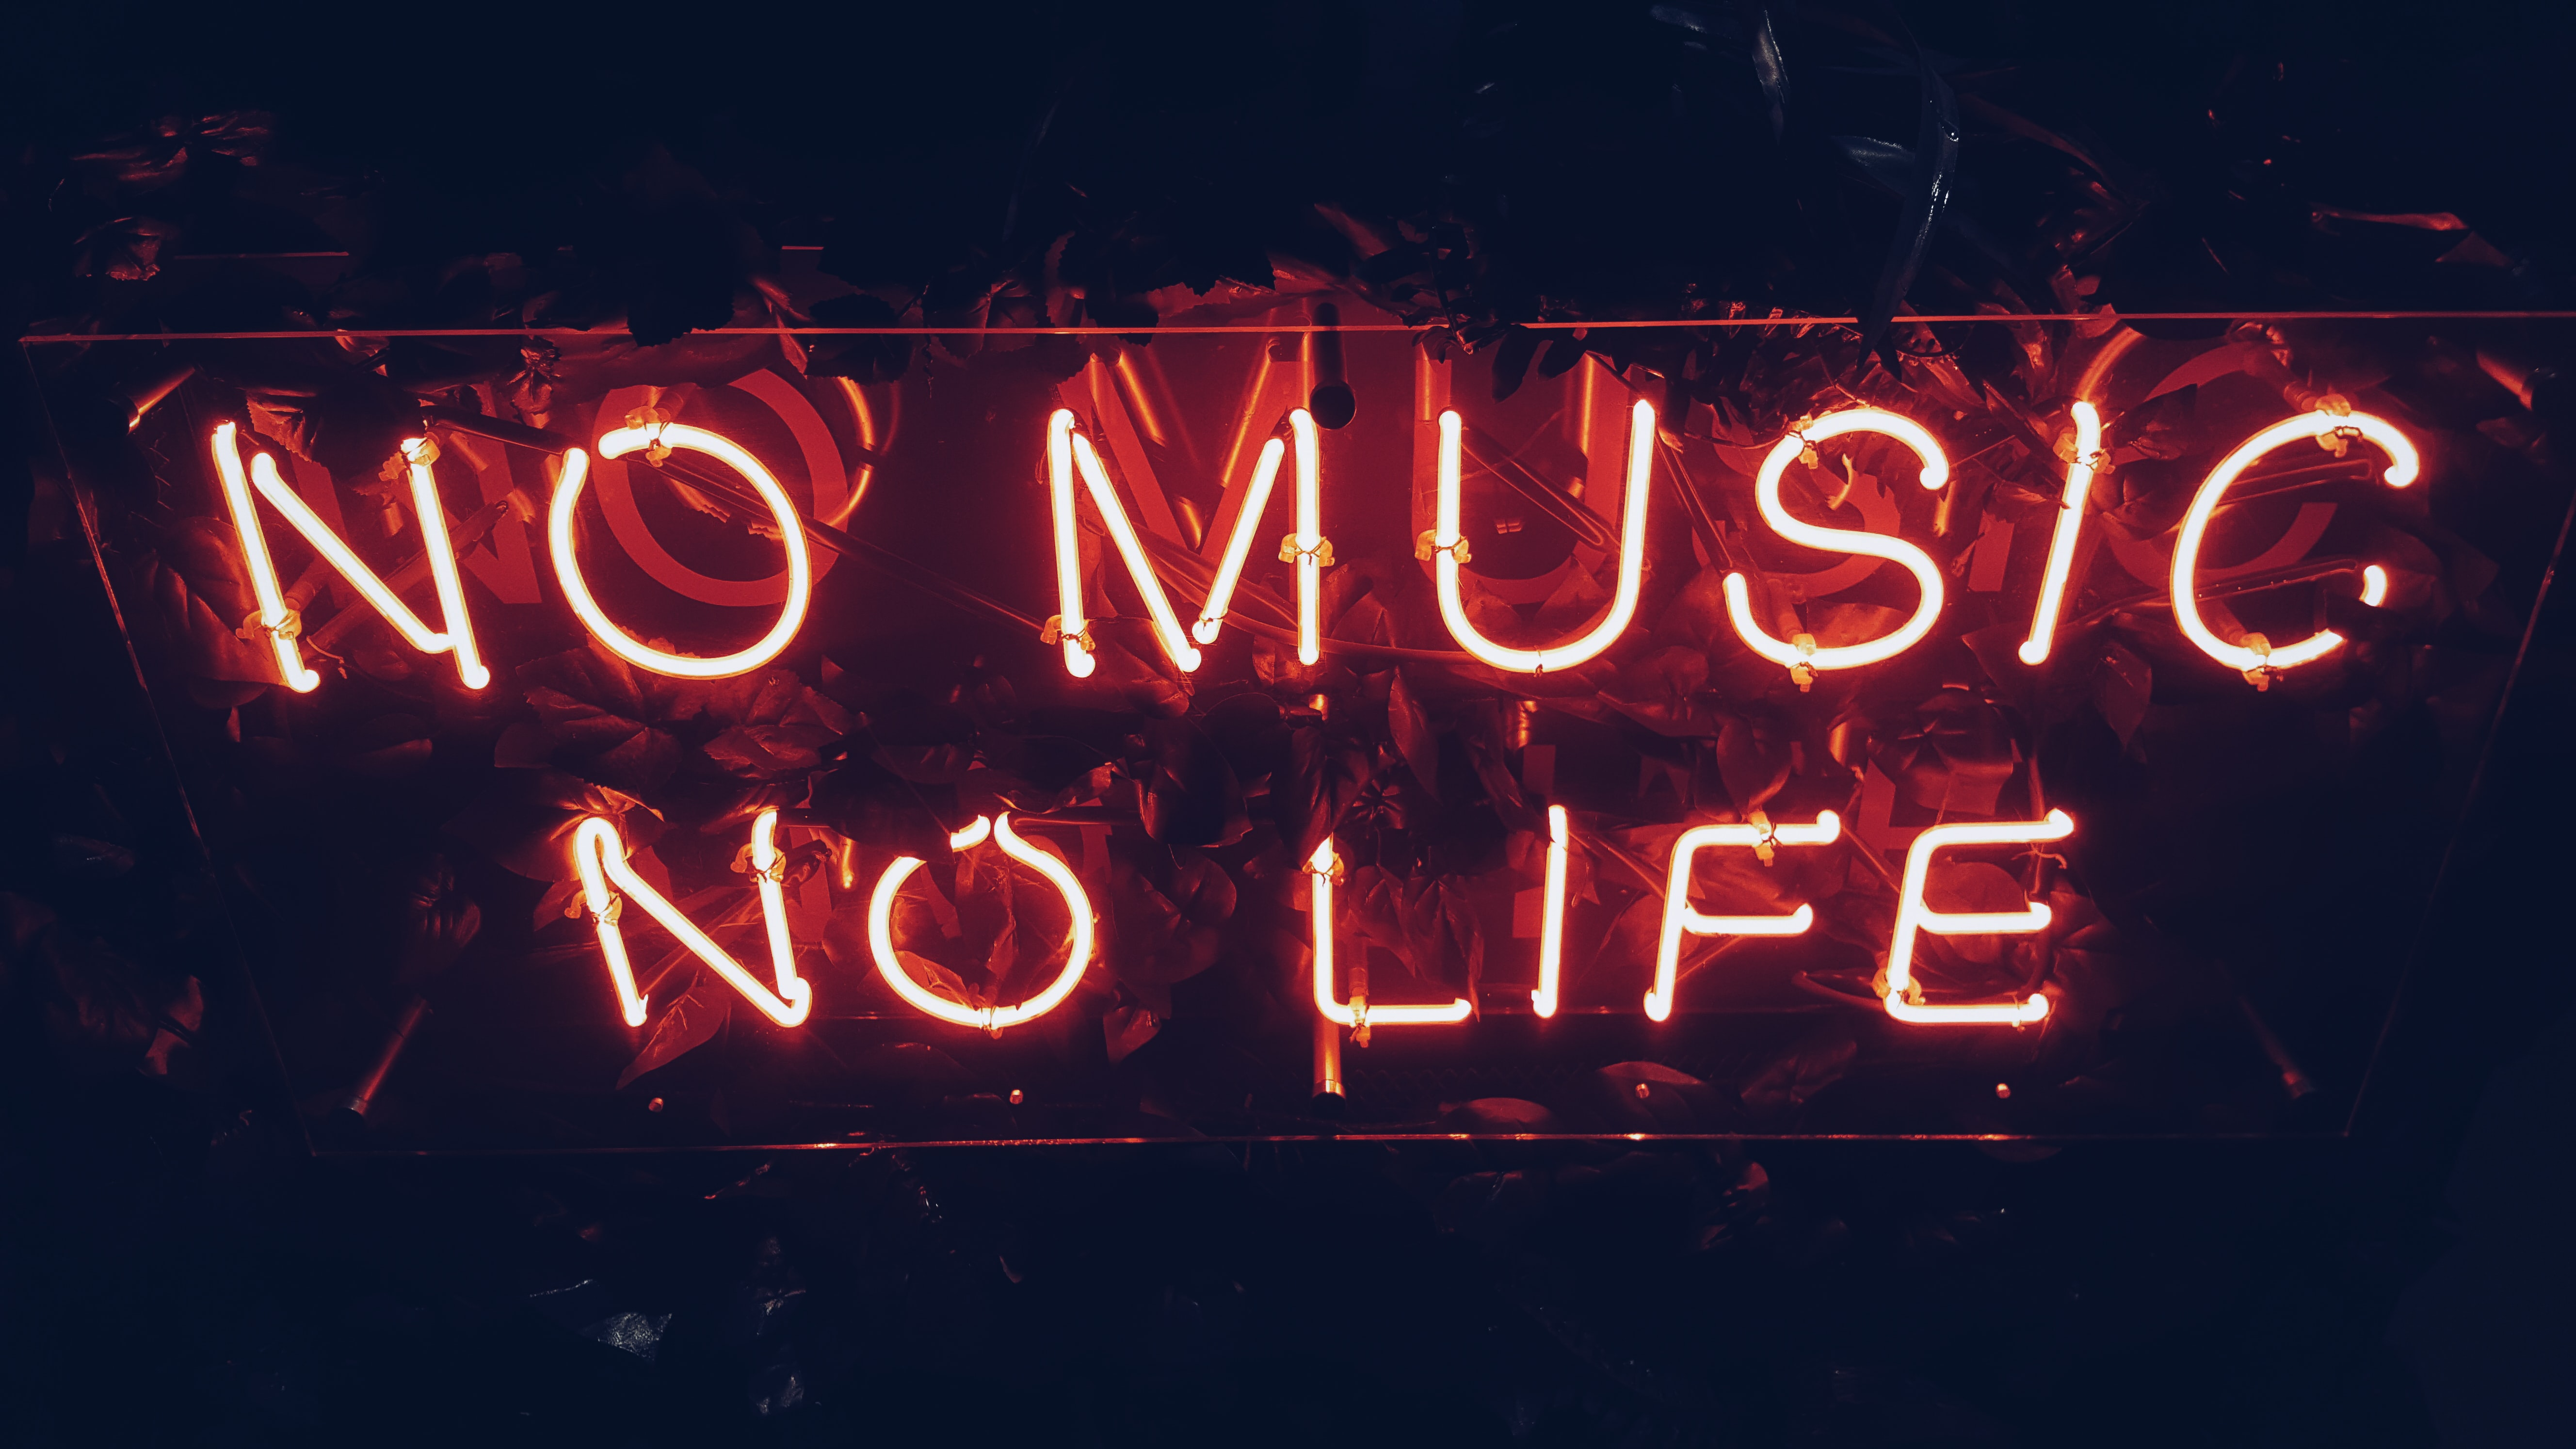 """A red neon reads """"No music, no life"""" against a dark background"""